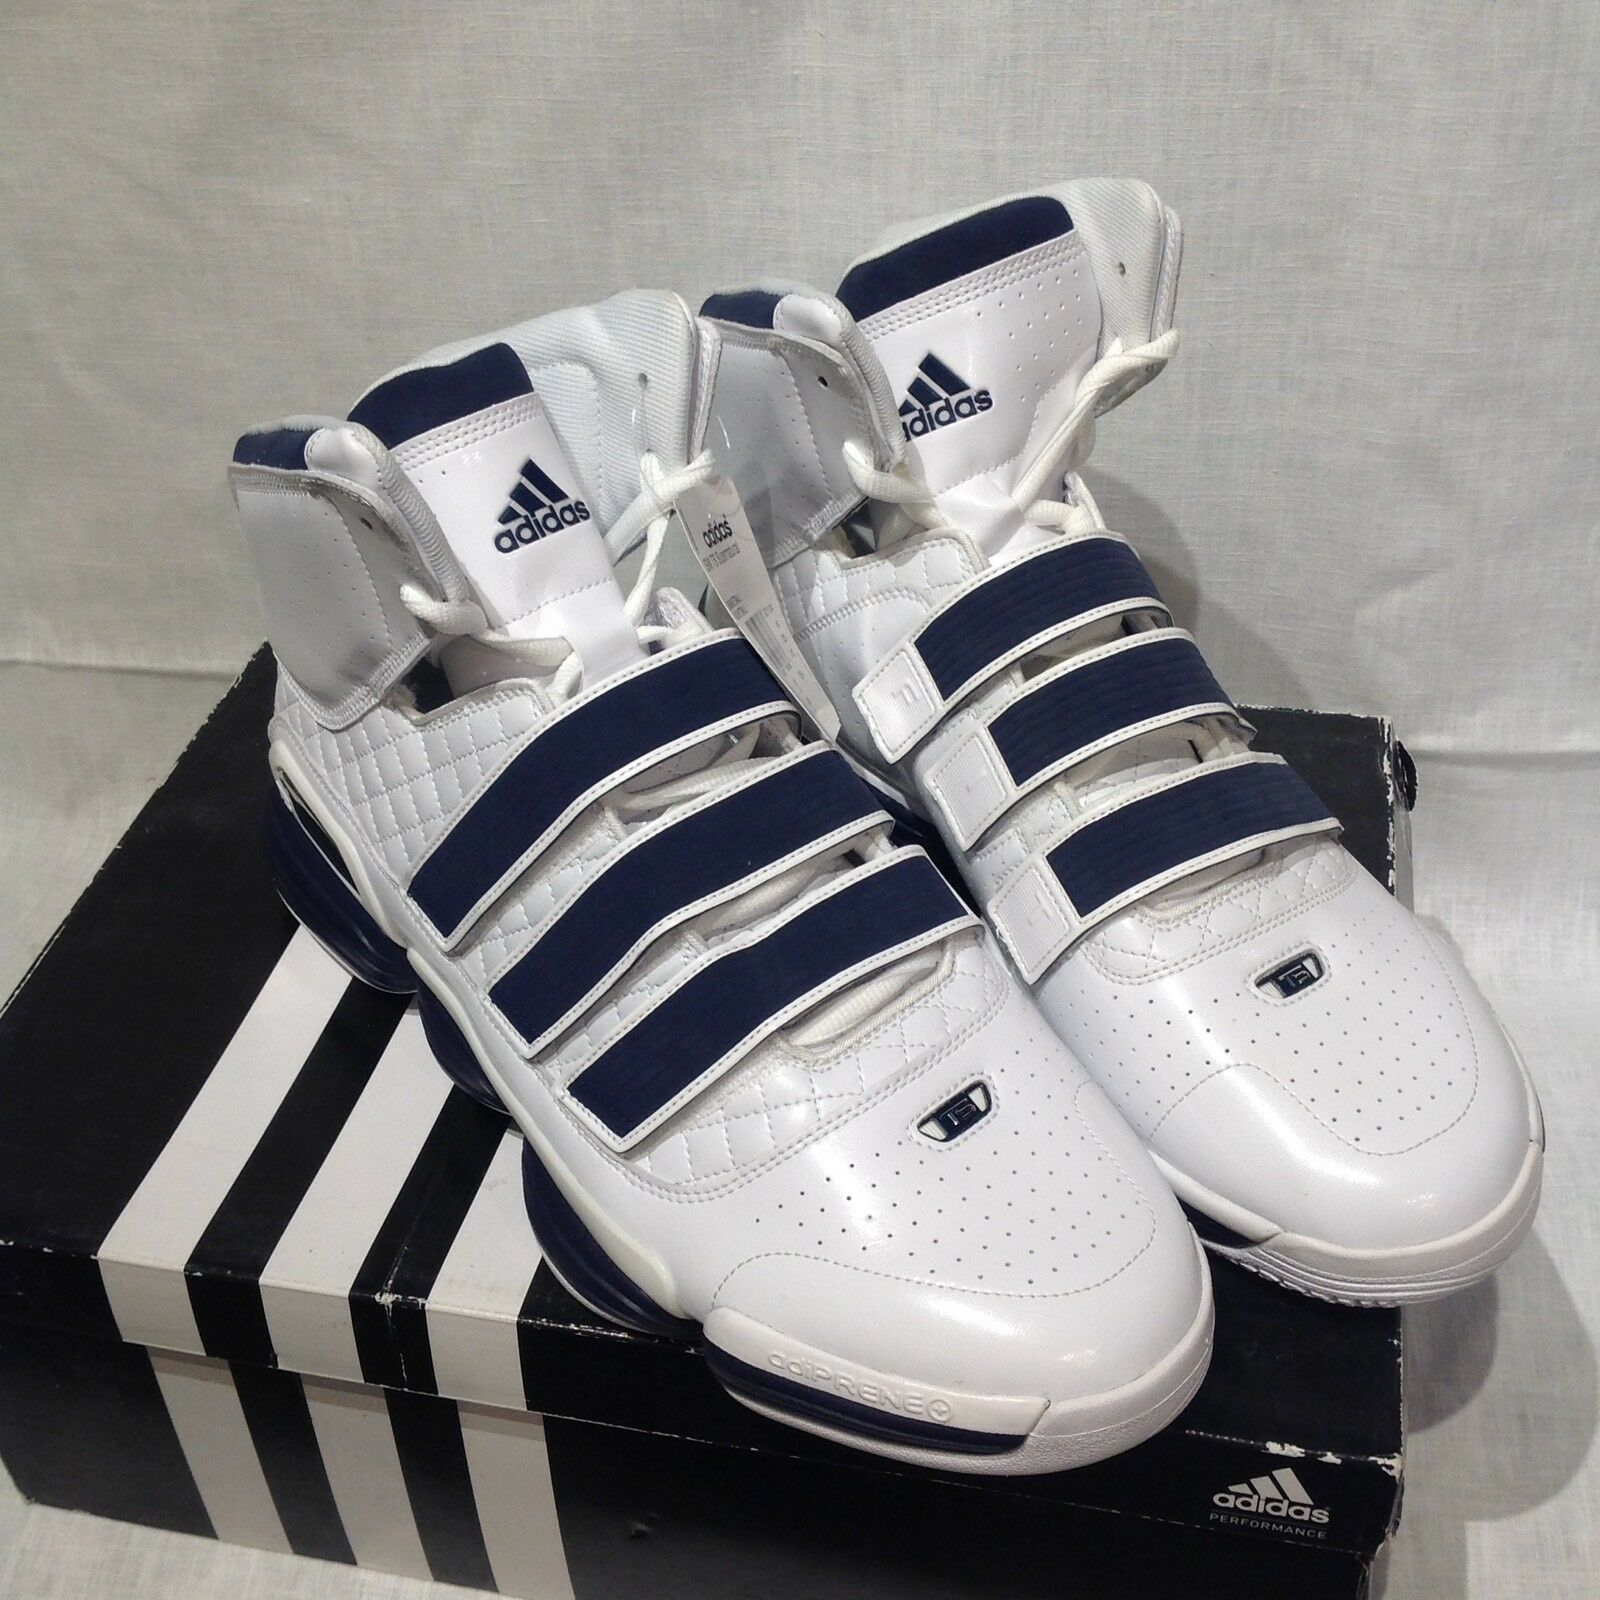 Adidas SM TS Supernatural Command Laced Basketball Sneakers - Size 17